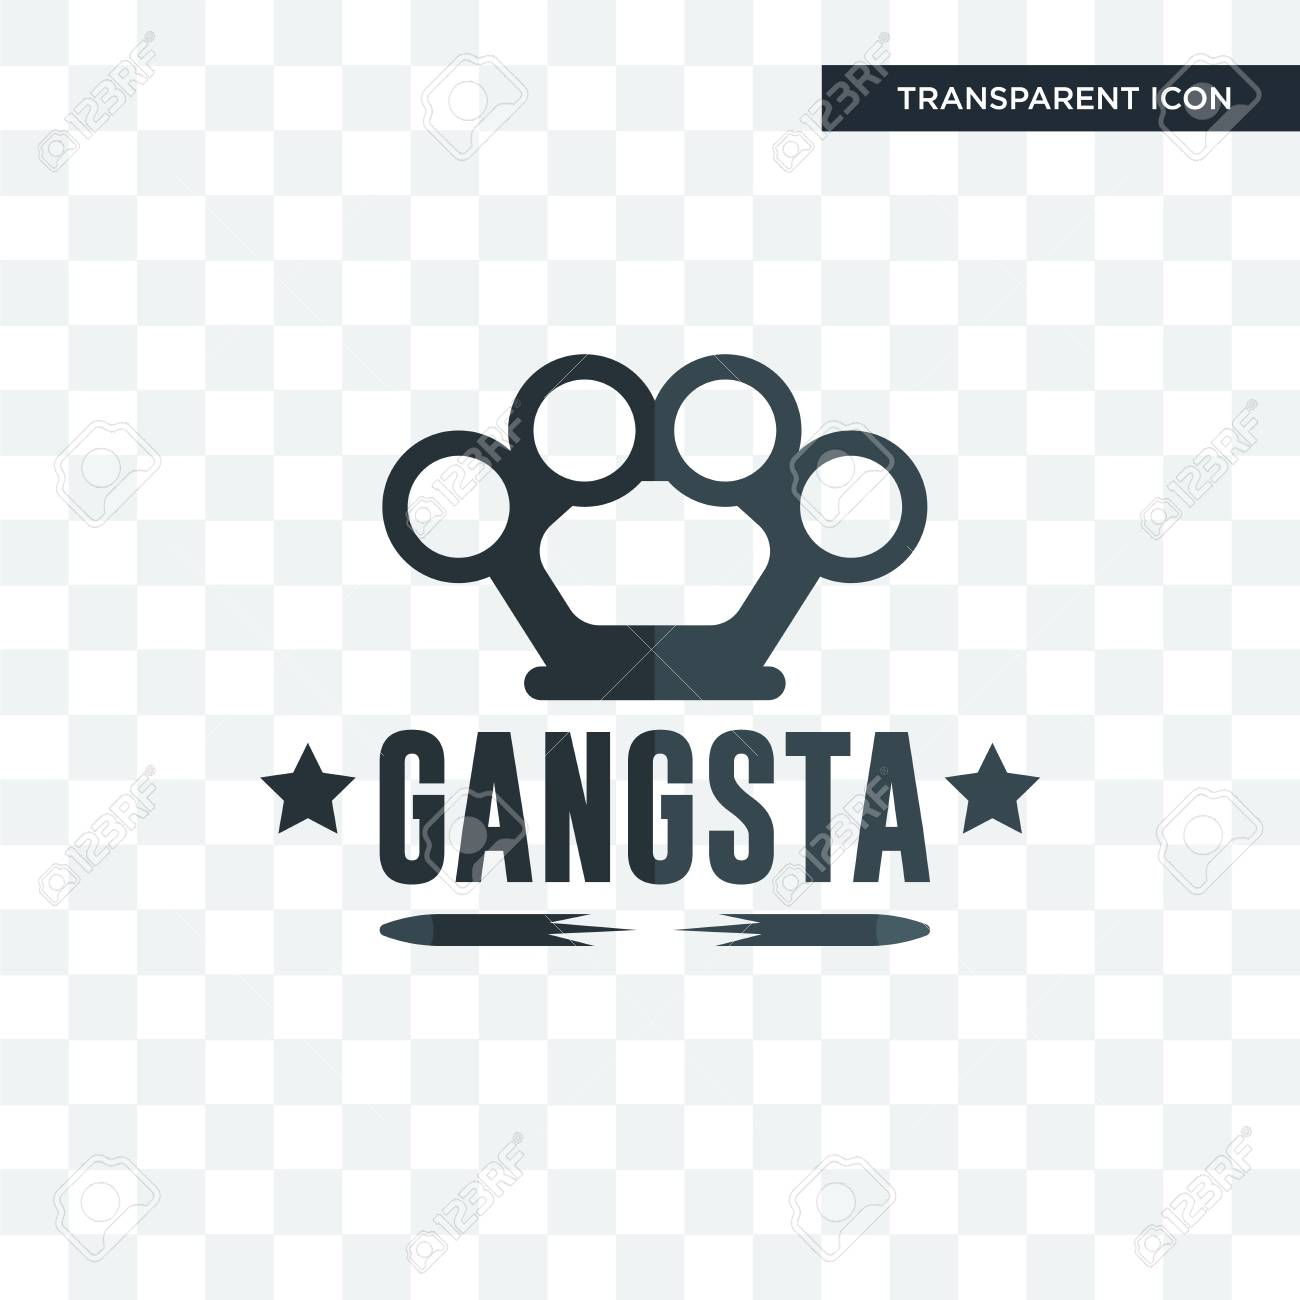 gangsta vector icon isolated on transparent background gangsta